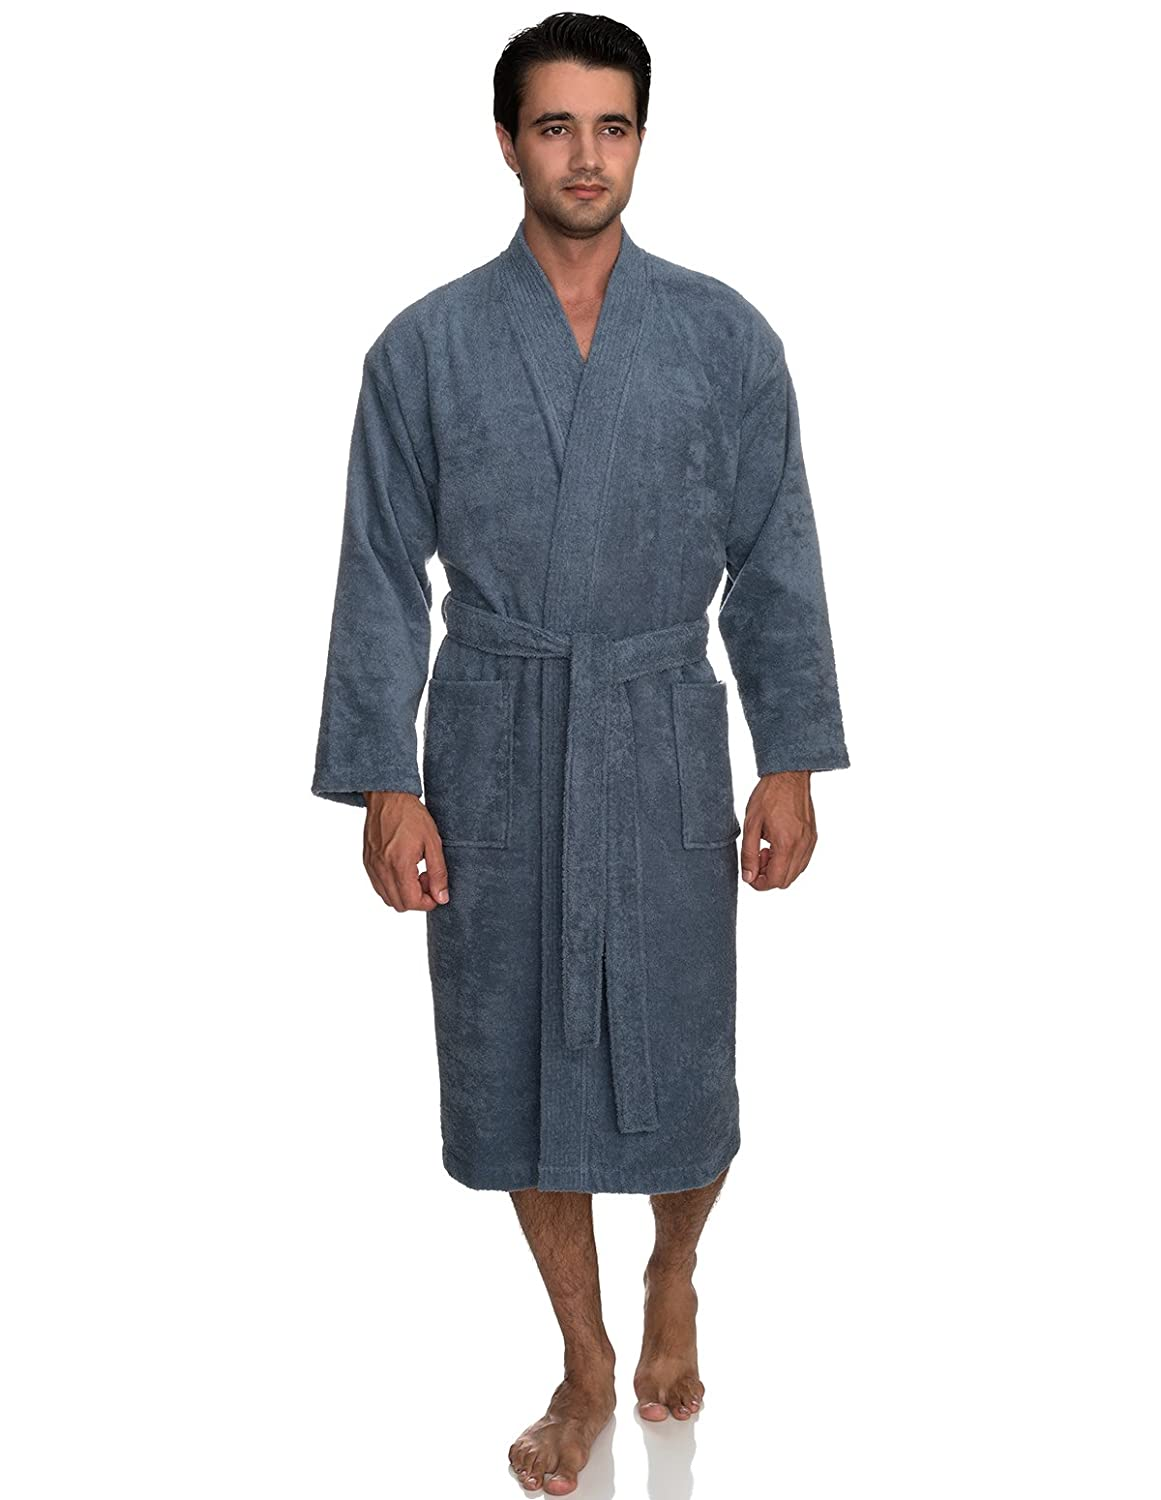 TowelSelections SLEEPWEAR メンズ B073Q5JR91 Small / Medium|フリントストーン(Flint Stone) フリントストーン(Flint Stone) Small / Medium